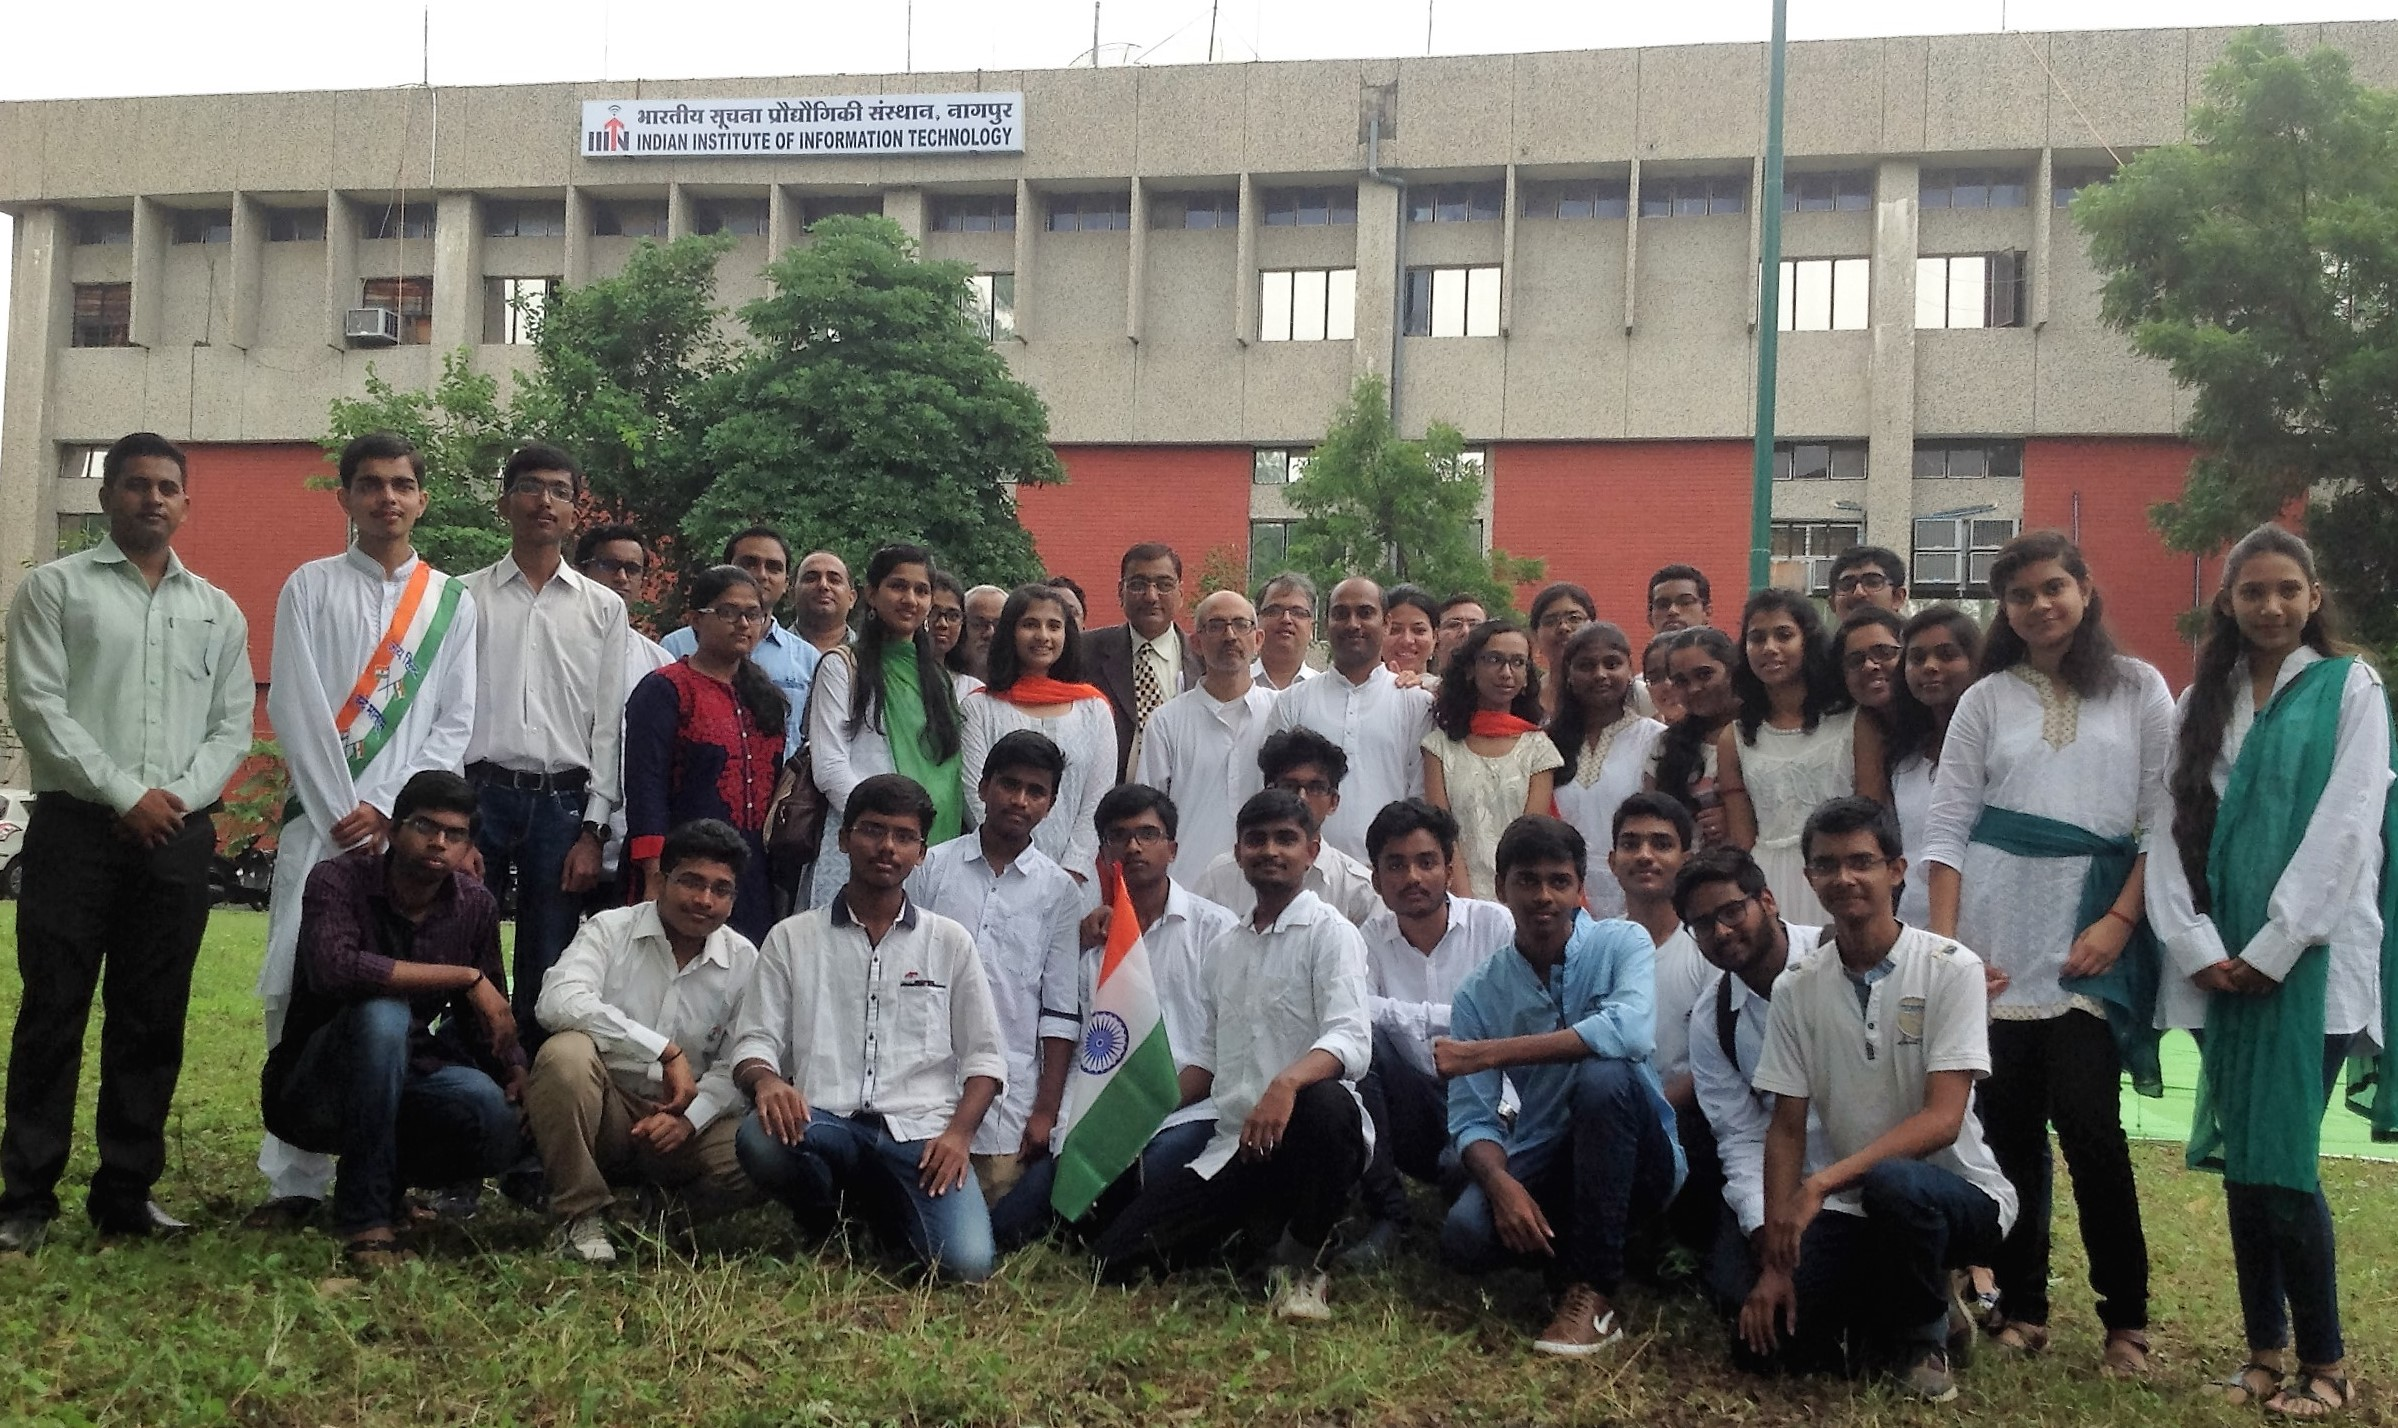 IIIT (Indian Institute of Information Technology), Nagpur Image